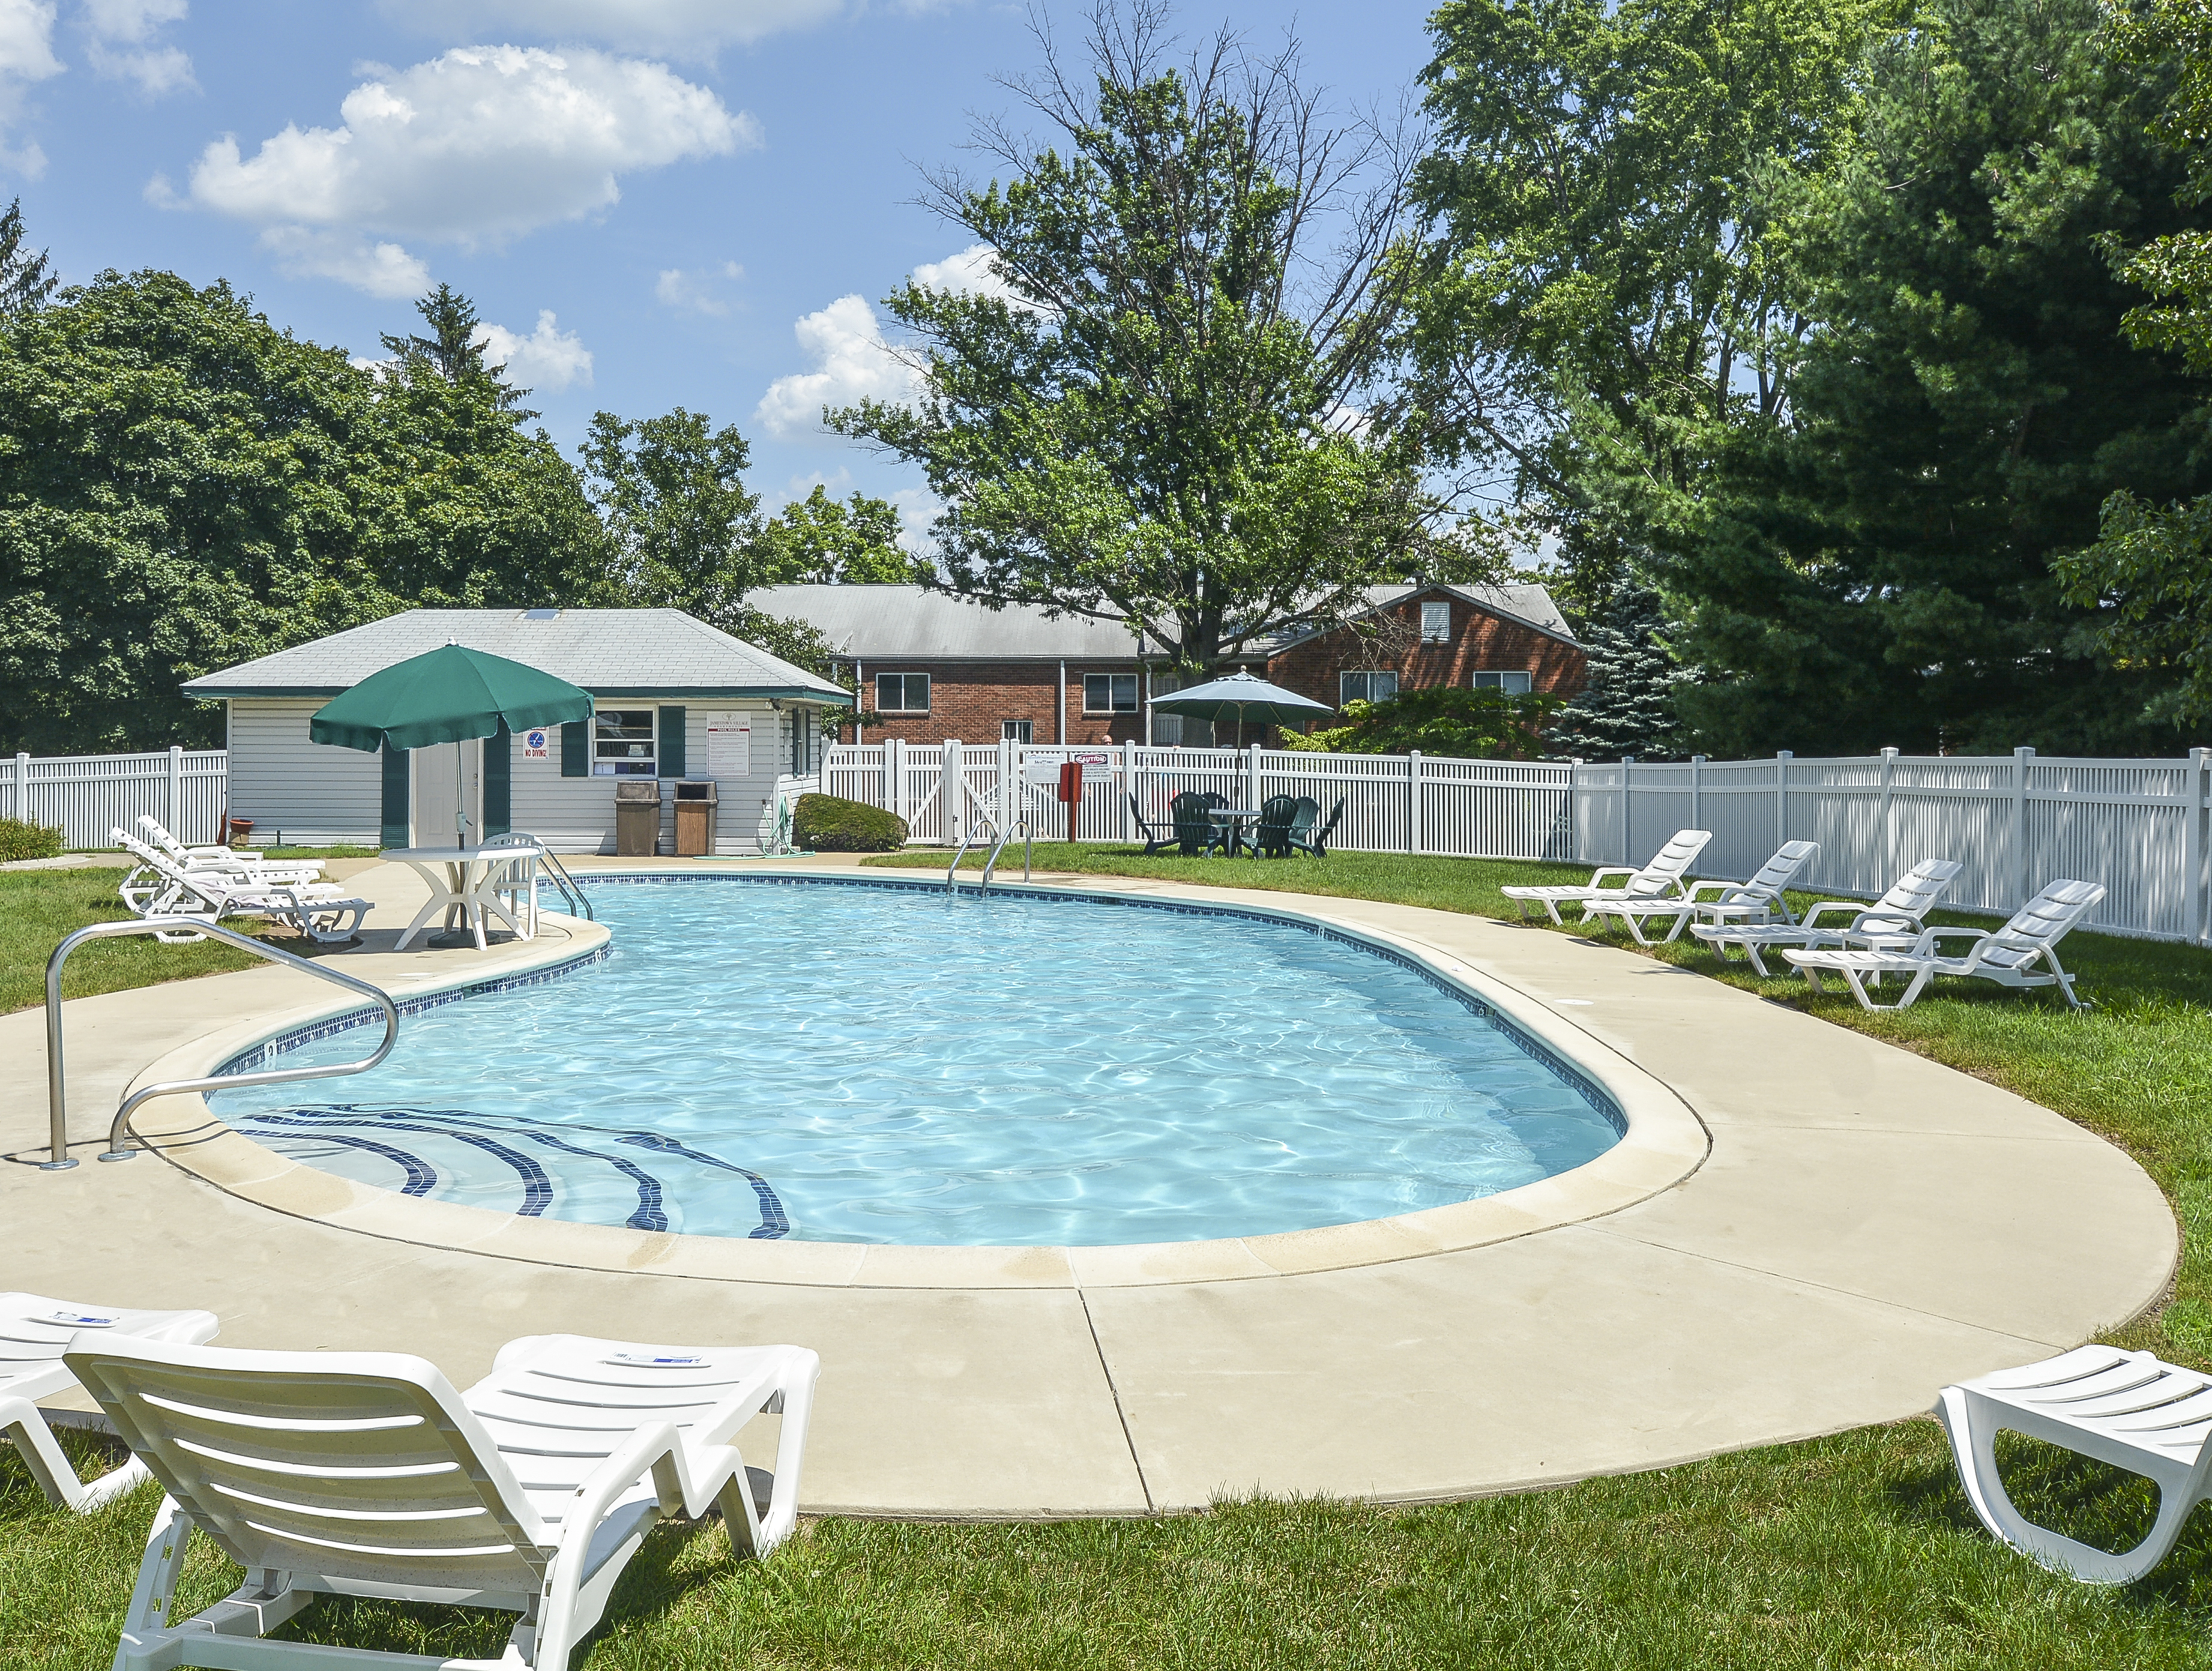 Swimming Pool | Willow Grove Pennsylvania Apartments for Rent | Jamestown Village Apartments